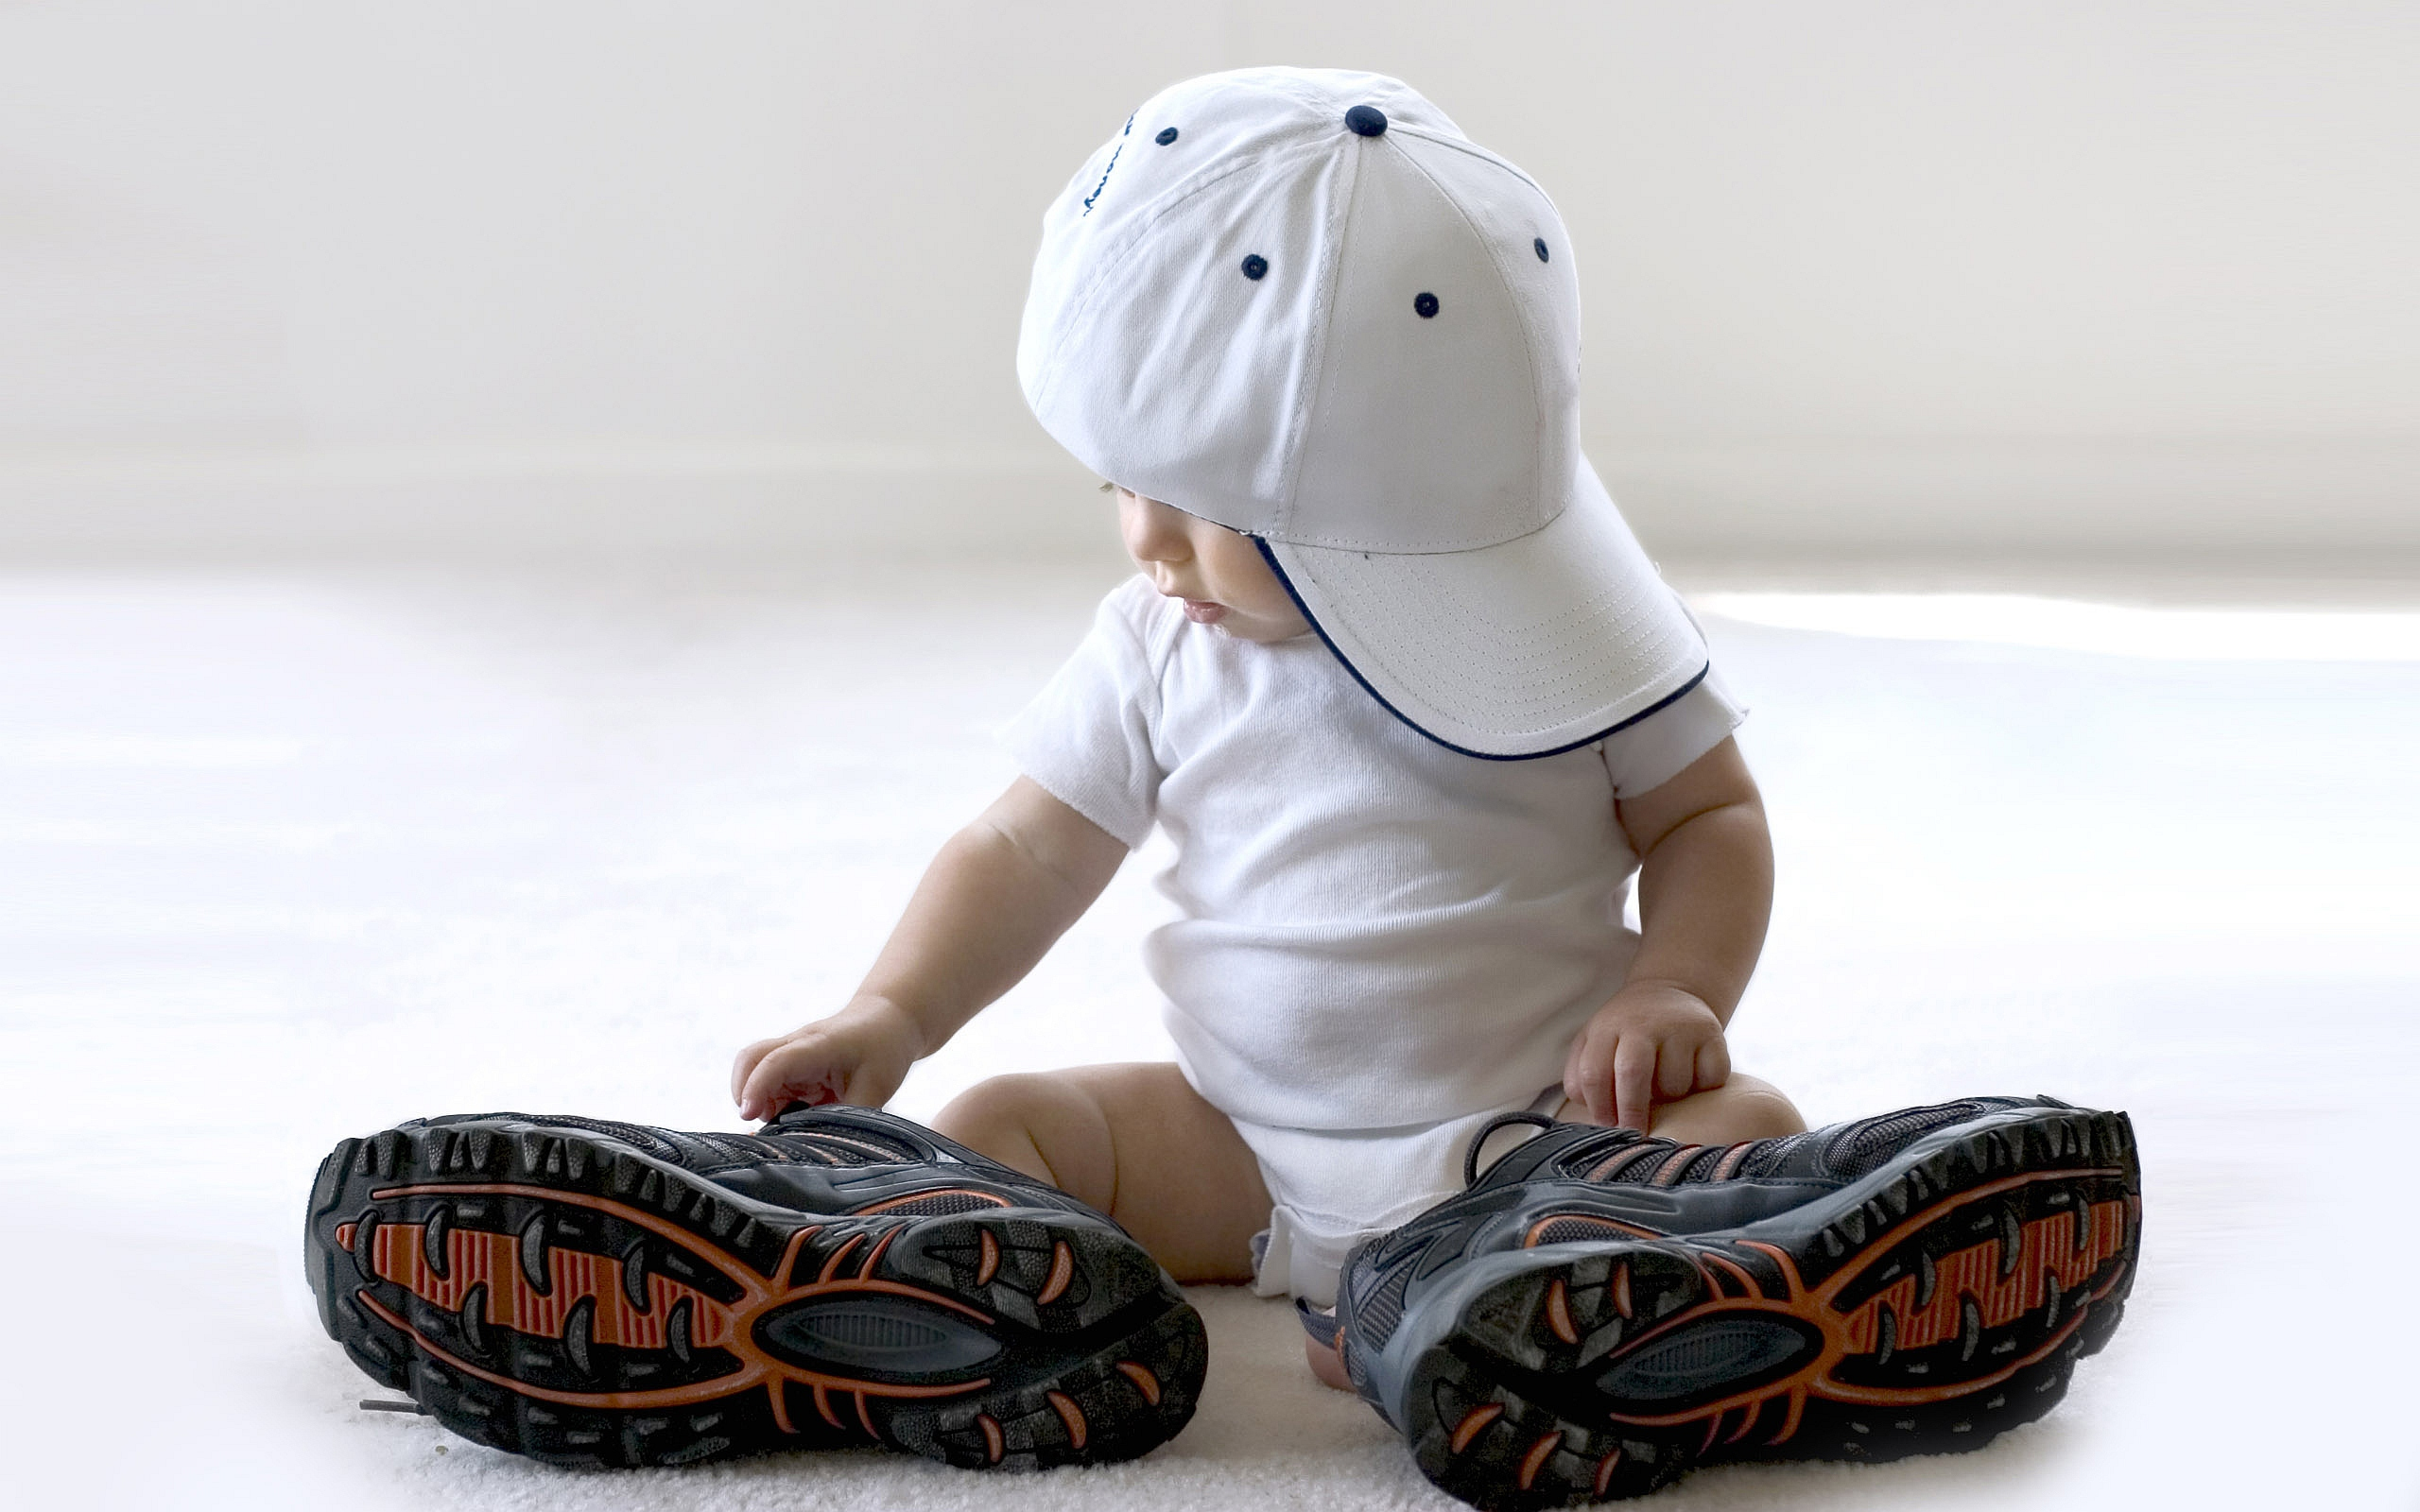 Baby with big Shoes